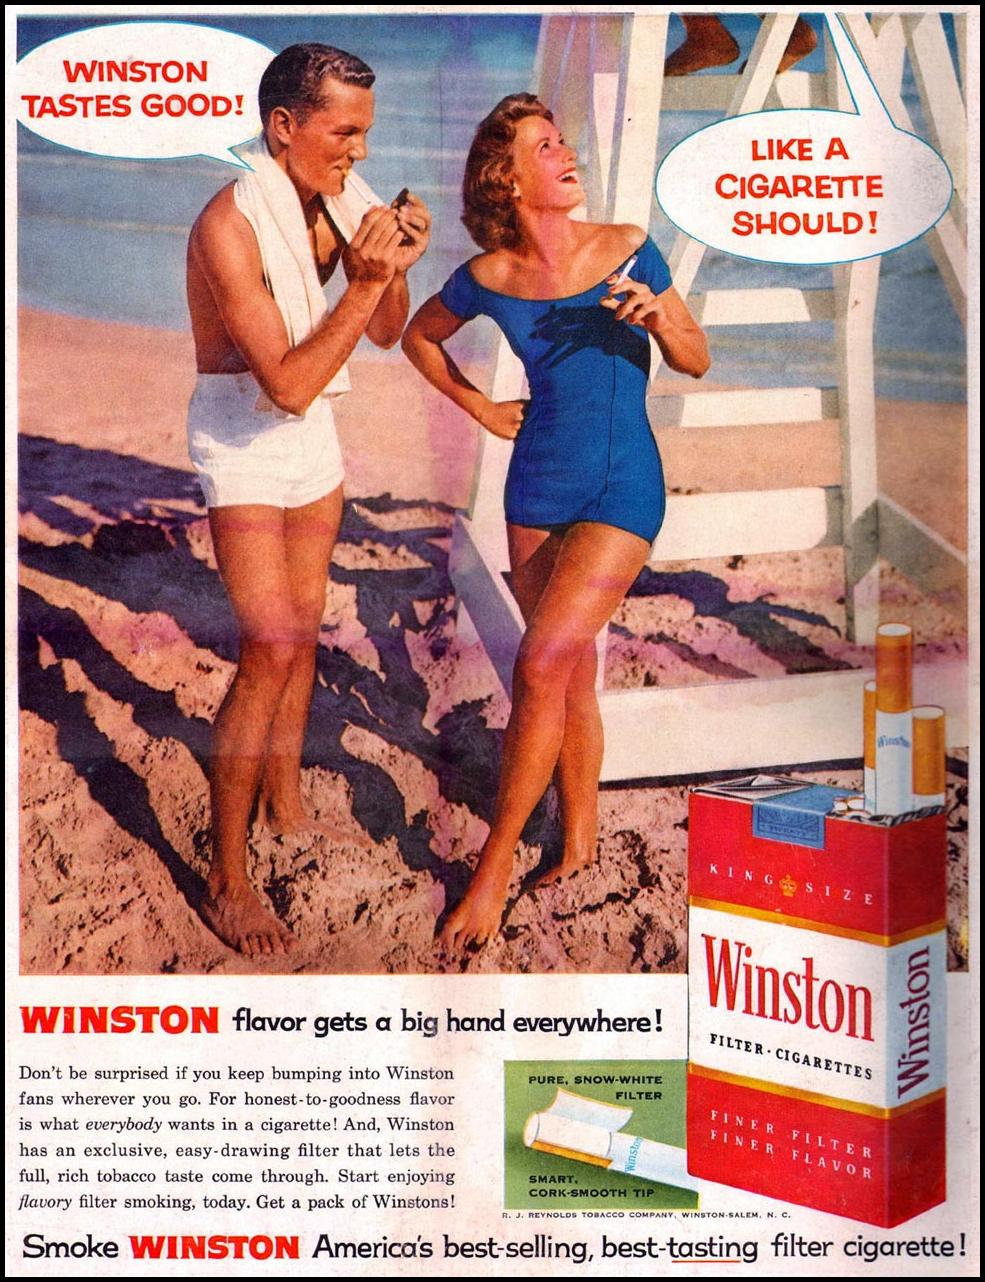 WINSTON CIGARETTES LIFE 06/24/1957 BACK COVER